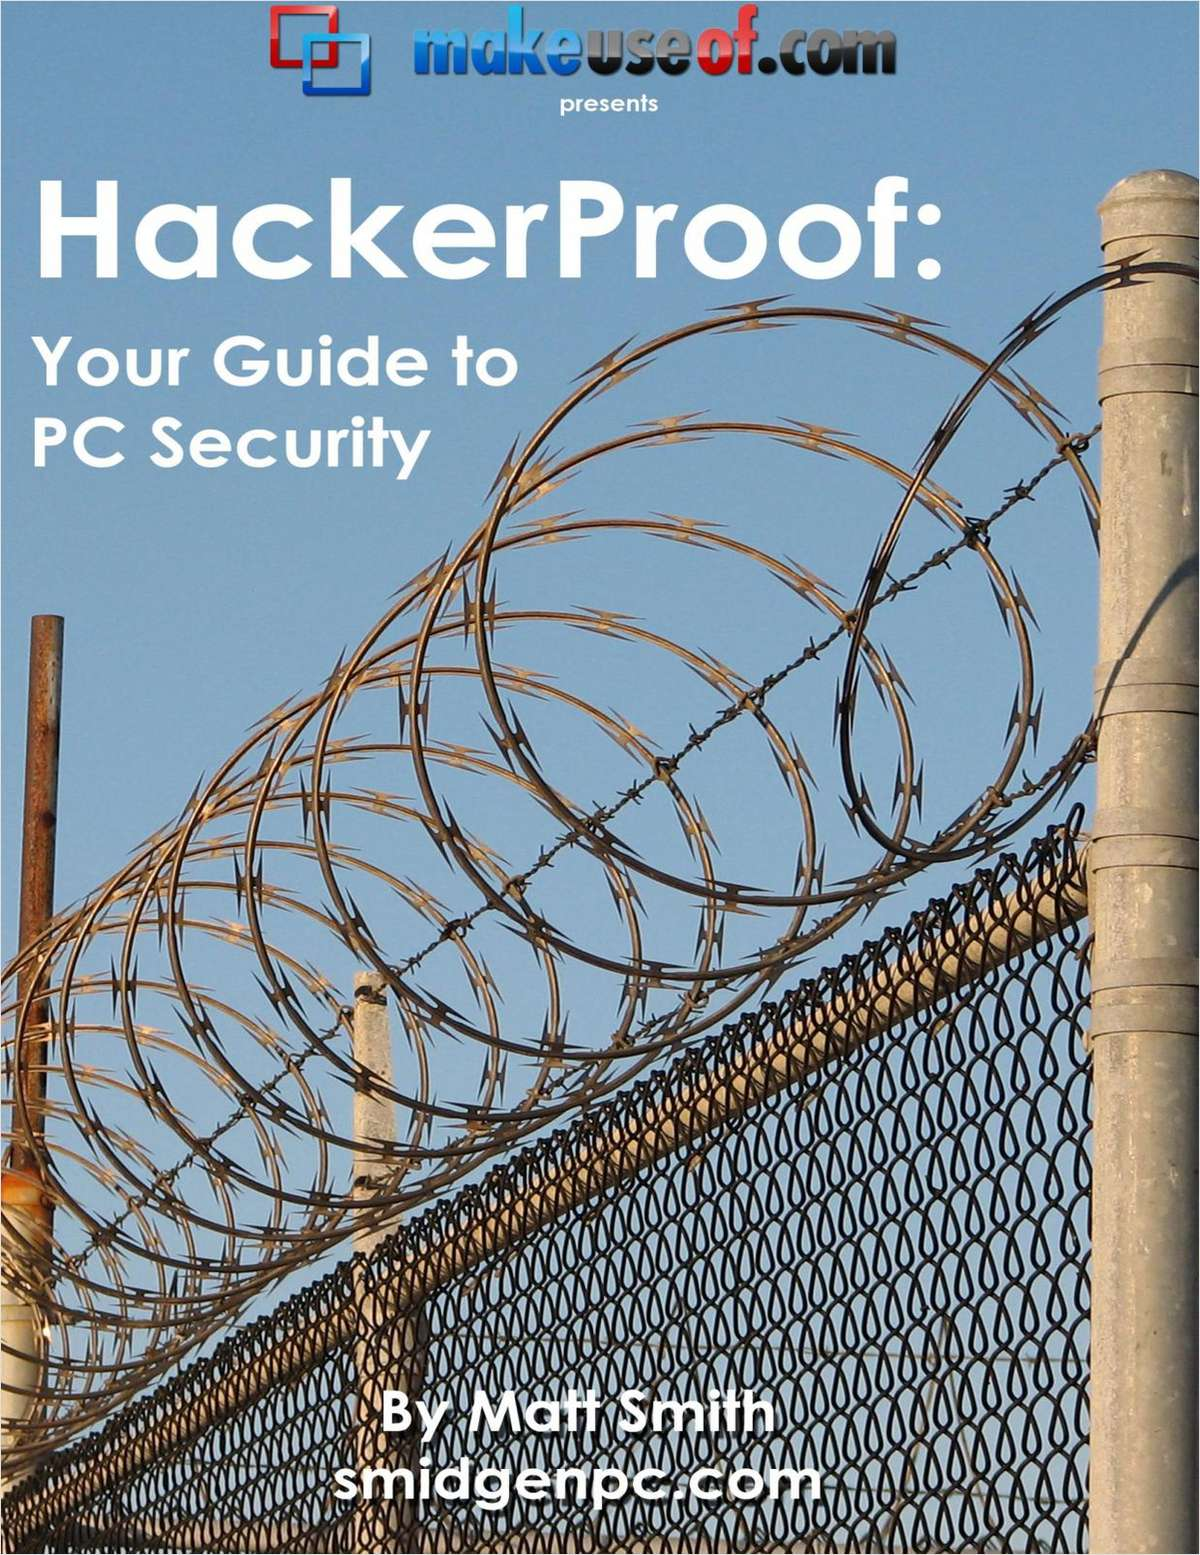 HackerProof: Your Guide to PC Security